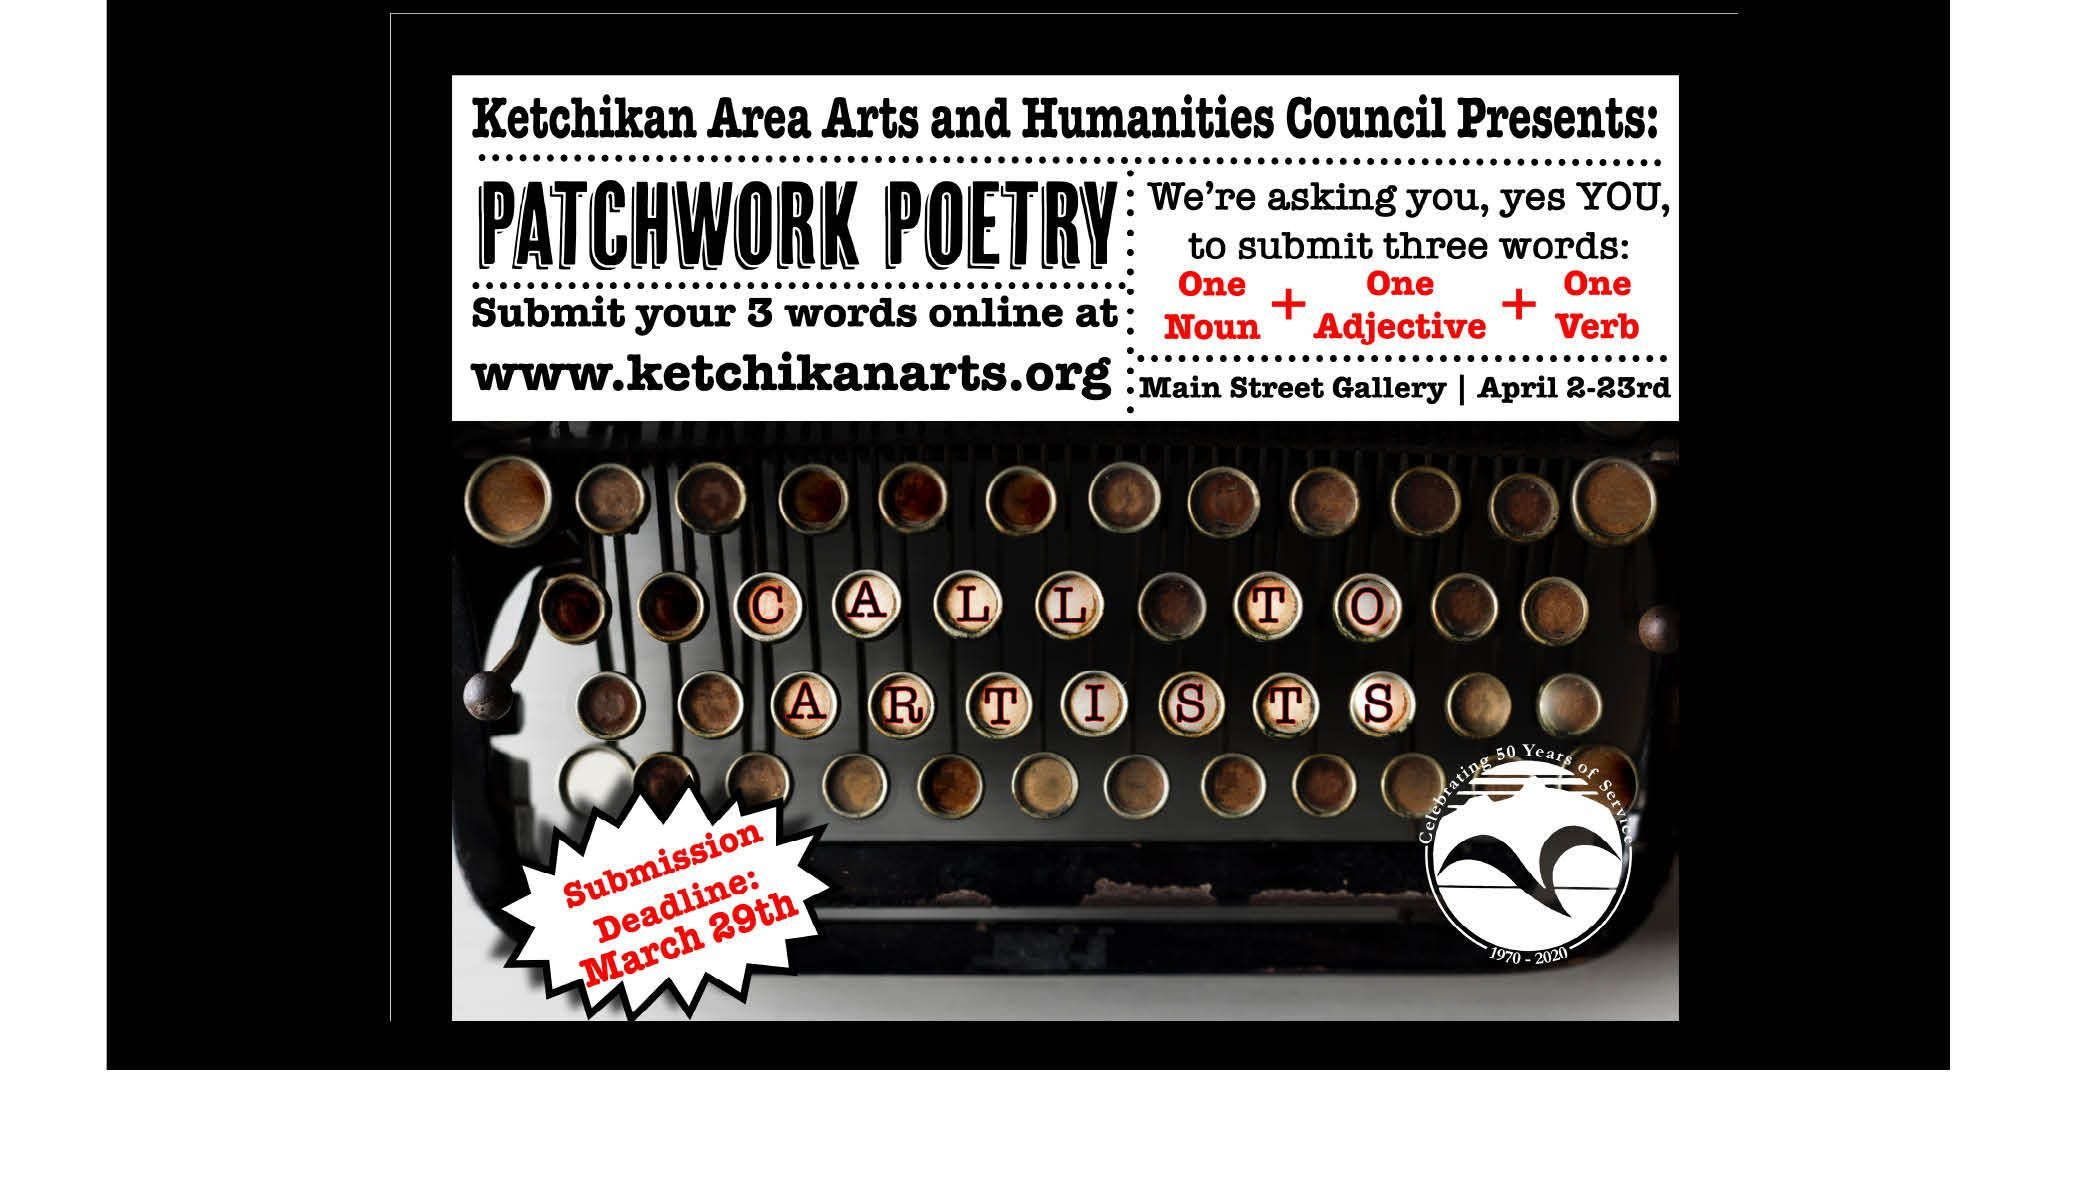 Patchwork Poetry an open call exhibit celebrating National Poetry Month